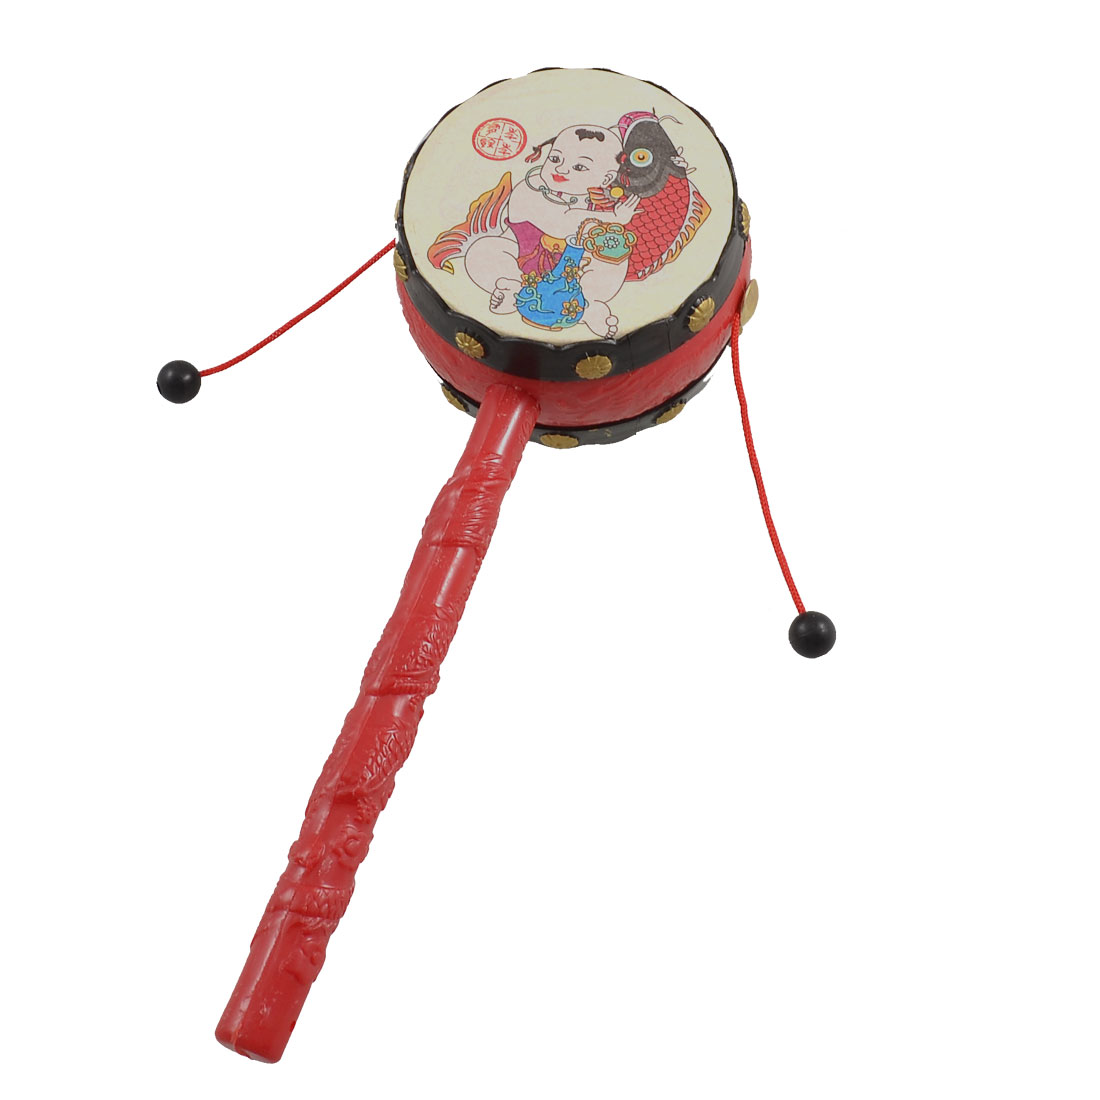 Babies Red Plastic Handle Music Instrument Rattle Drum Sound Toy Gift